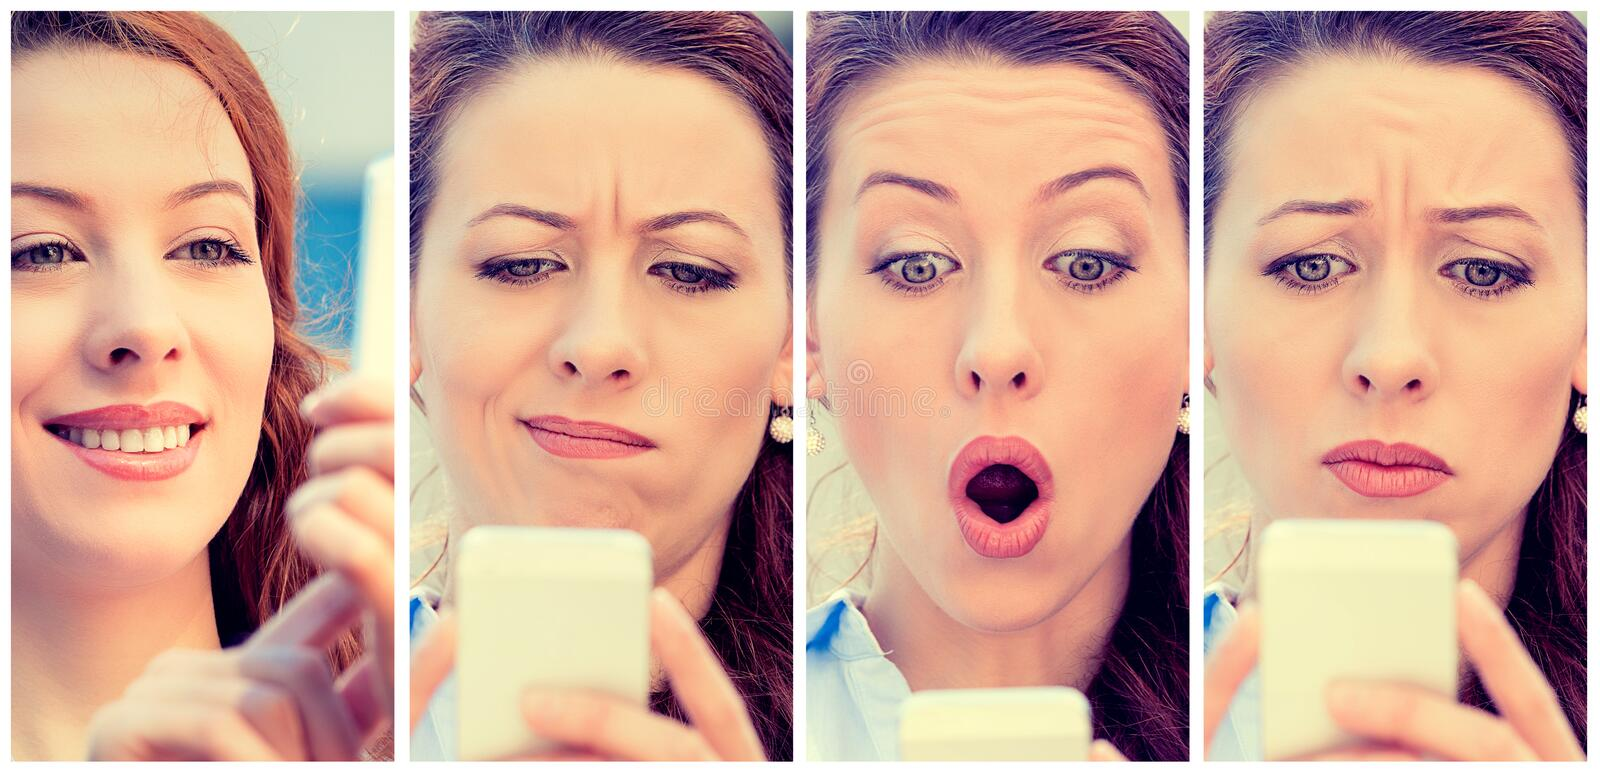 Woman with different expressions texting on smart phone royalty free stock photography